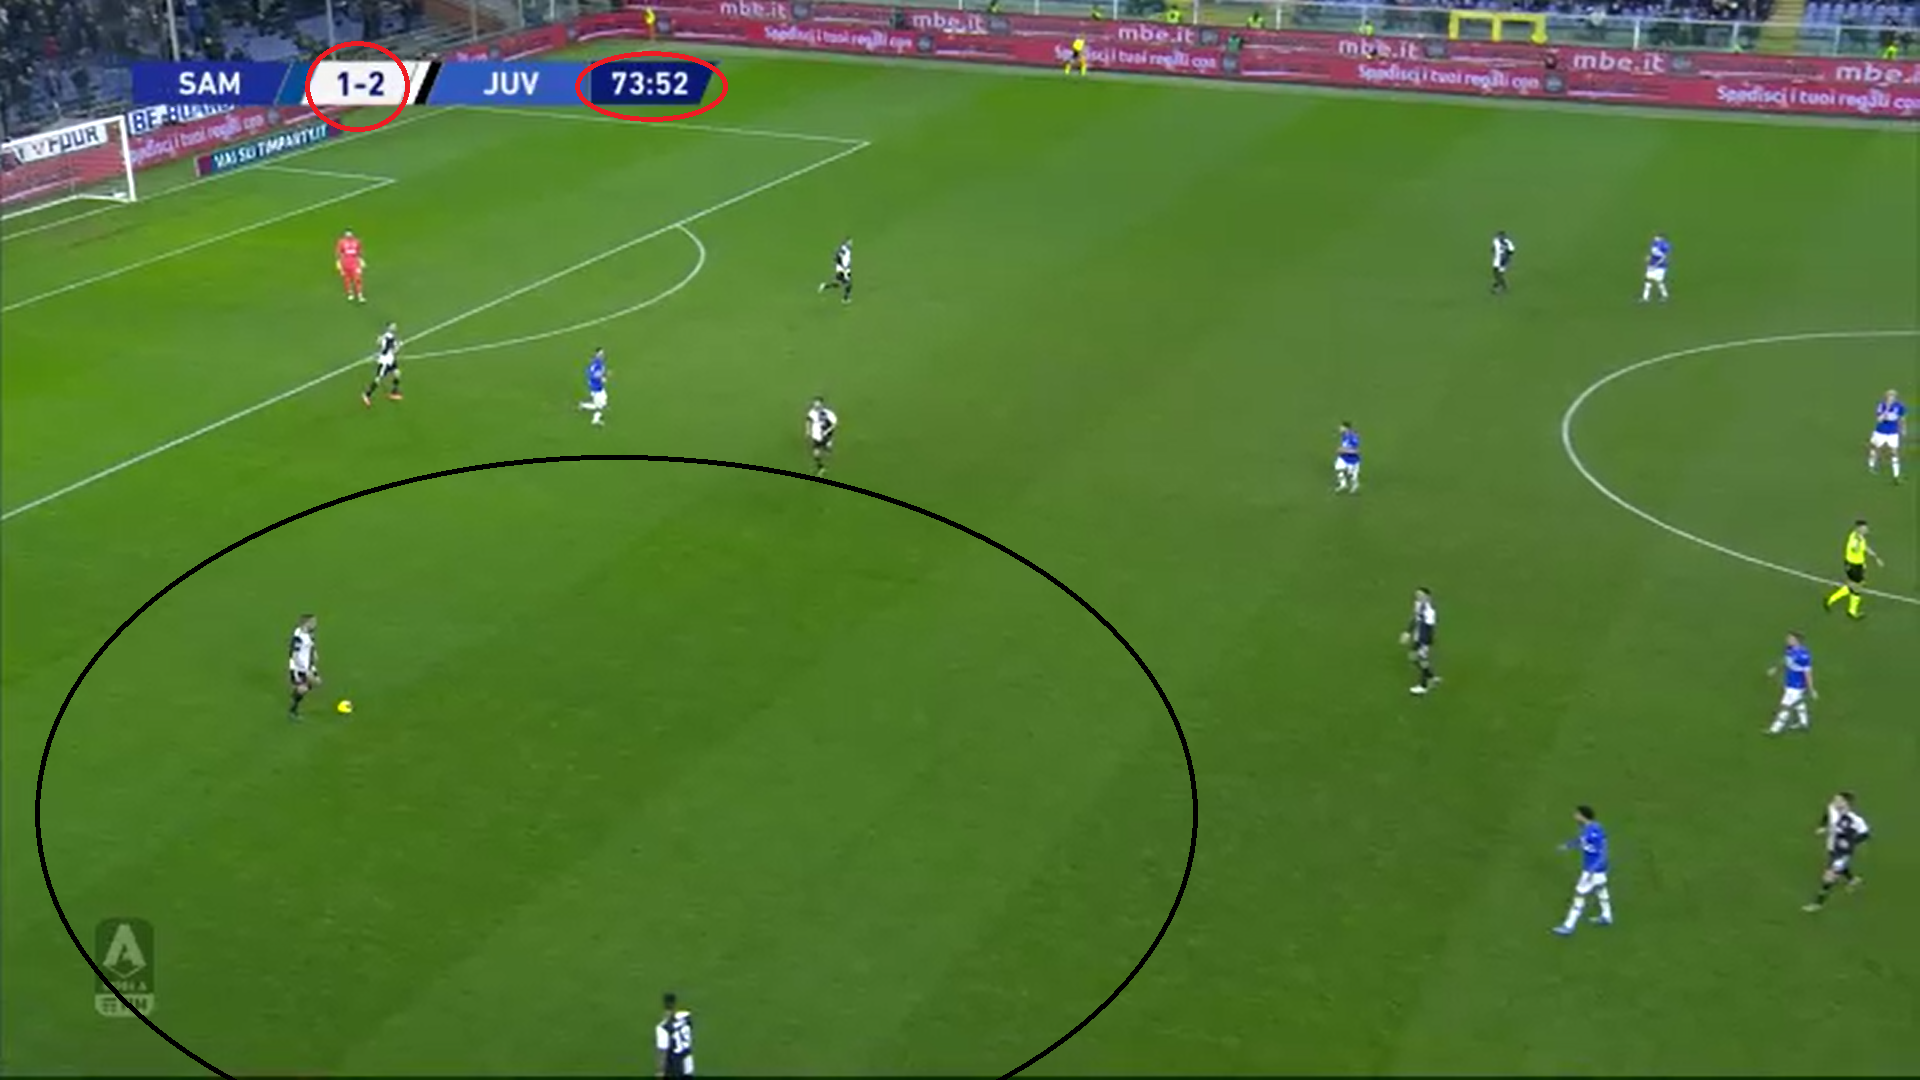 Serie A 2019/20: Sampdoria vs Juventus - tactical analysis tactics